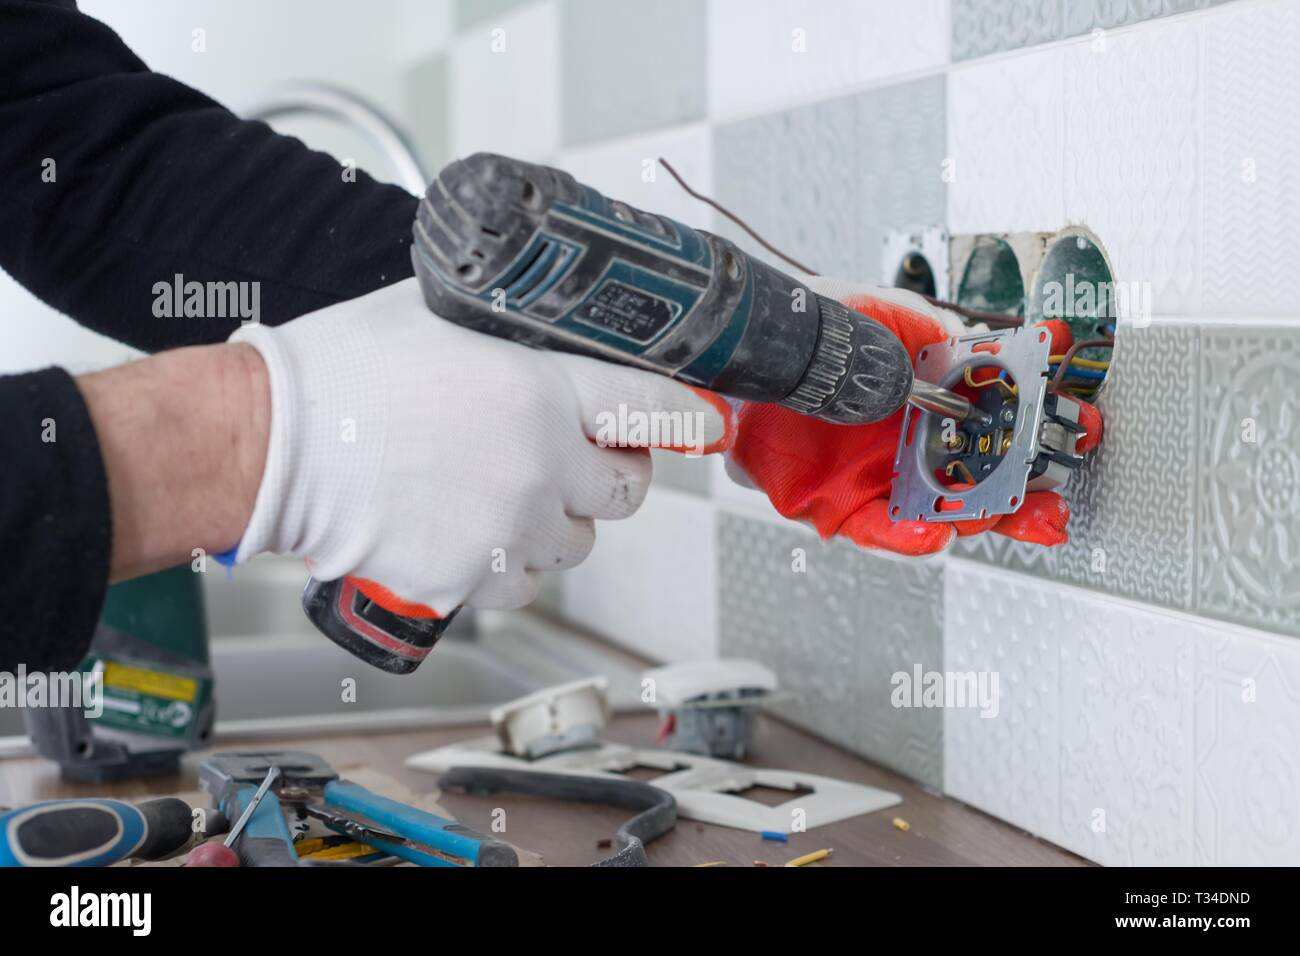 Renovation and construction in kitchen, close-up of ... on standard 220 volt outlet, usb wall outlet, cable tv outlet, installing wall outlet, usb plug outlet, 240 volt outlet, installing outlet box, installing recessed tv outlet, installing outlet in vehicles, installing electrical outlets,